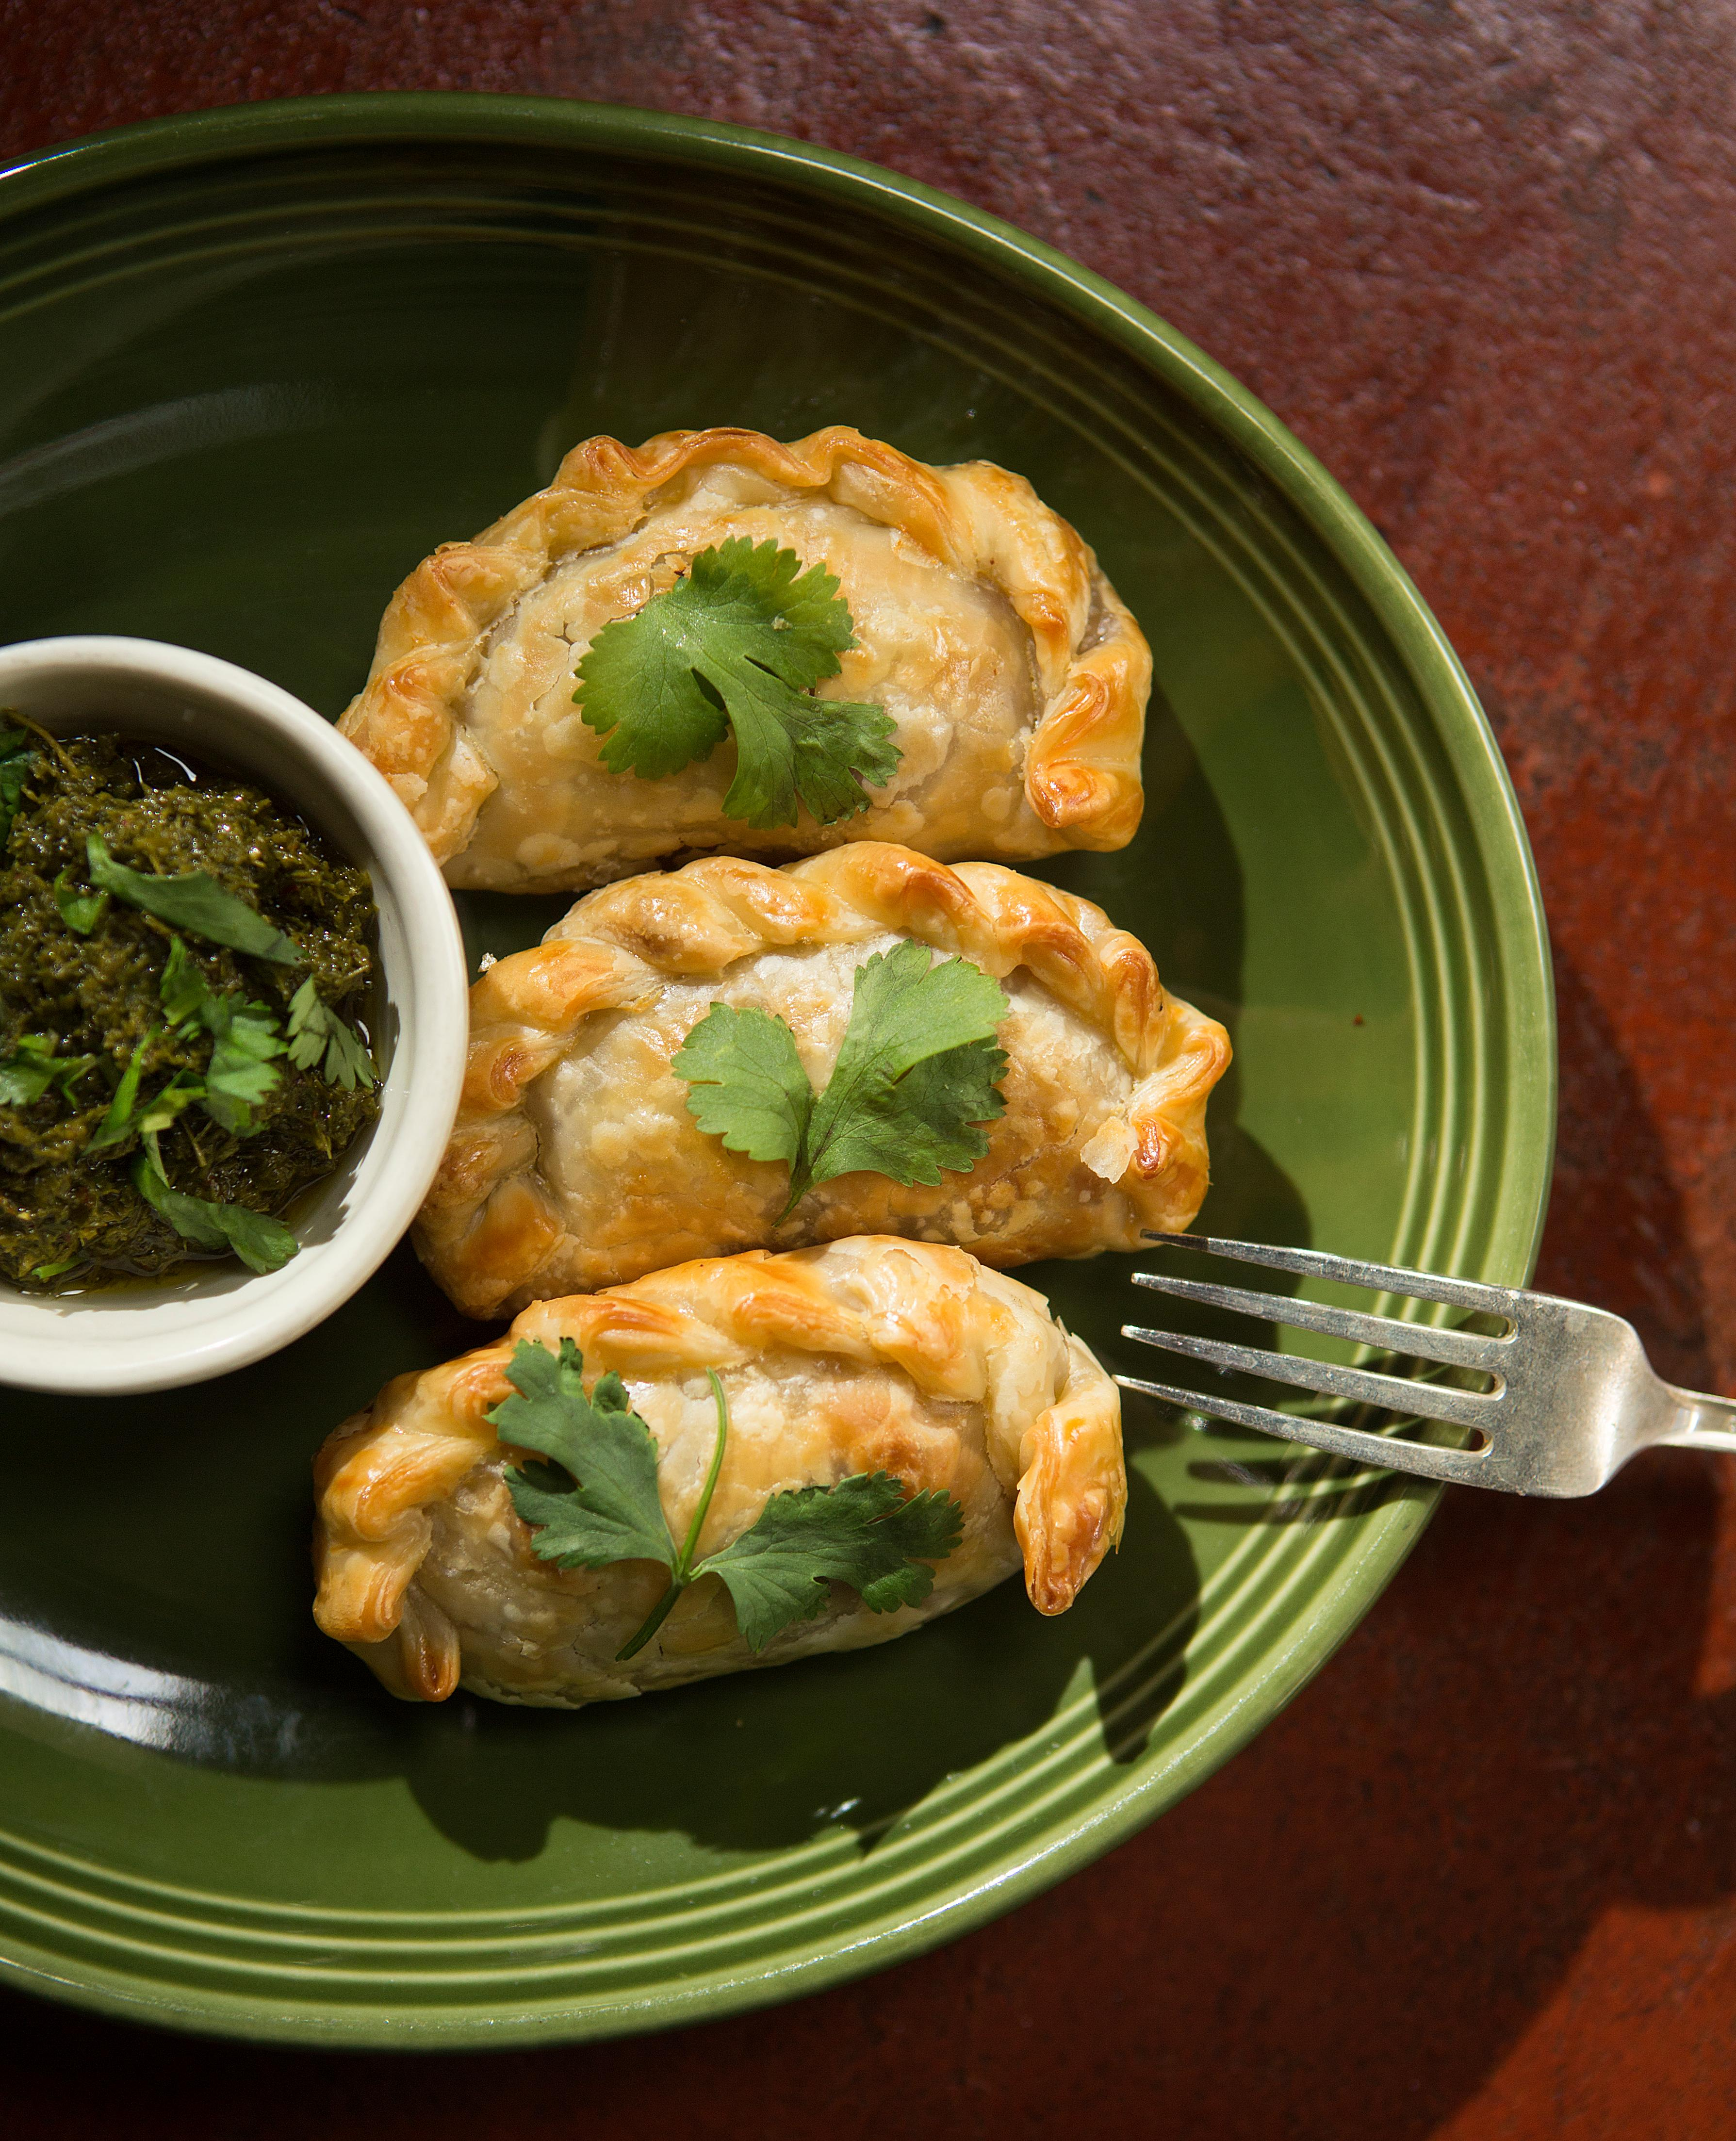 Chef Brian Durbin serves up an Argentinian style empanada, stuffed with savory beef, raisins, and chimichurri sauce on the side. The Innkeeper is a Caribbean-Latin-accented pub for carne asada & rum punch served in a simple space with a back patio. The Innkeeper is located at 2510 1st Ave, Seattle, WA 98121. (Sy Bean / Seattle Refined)